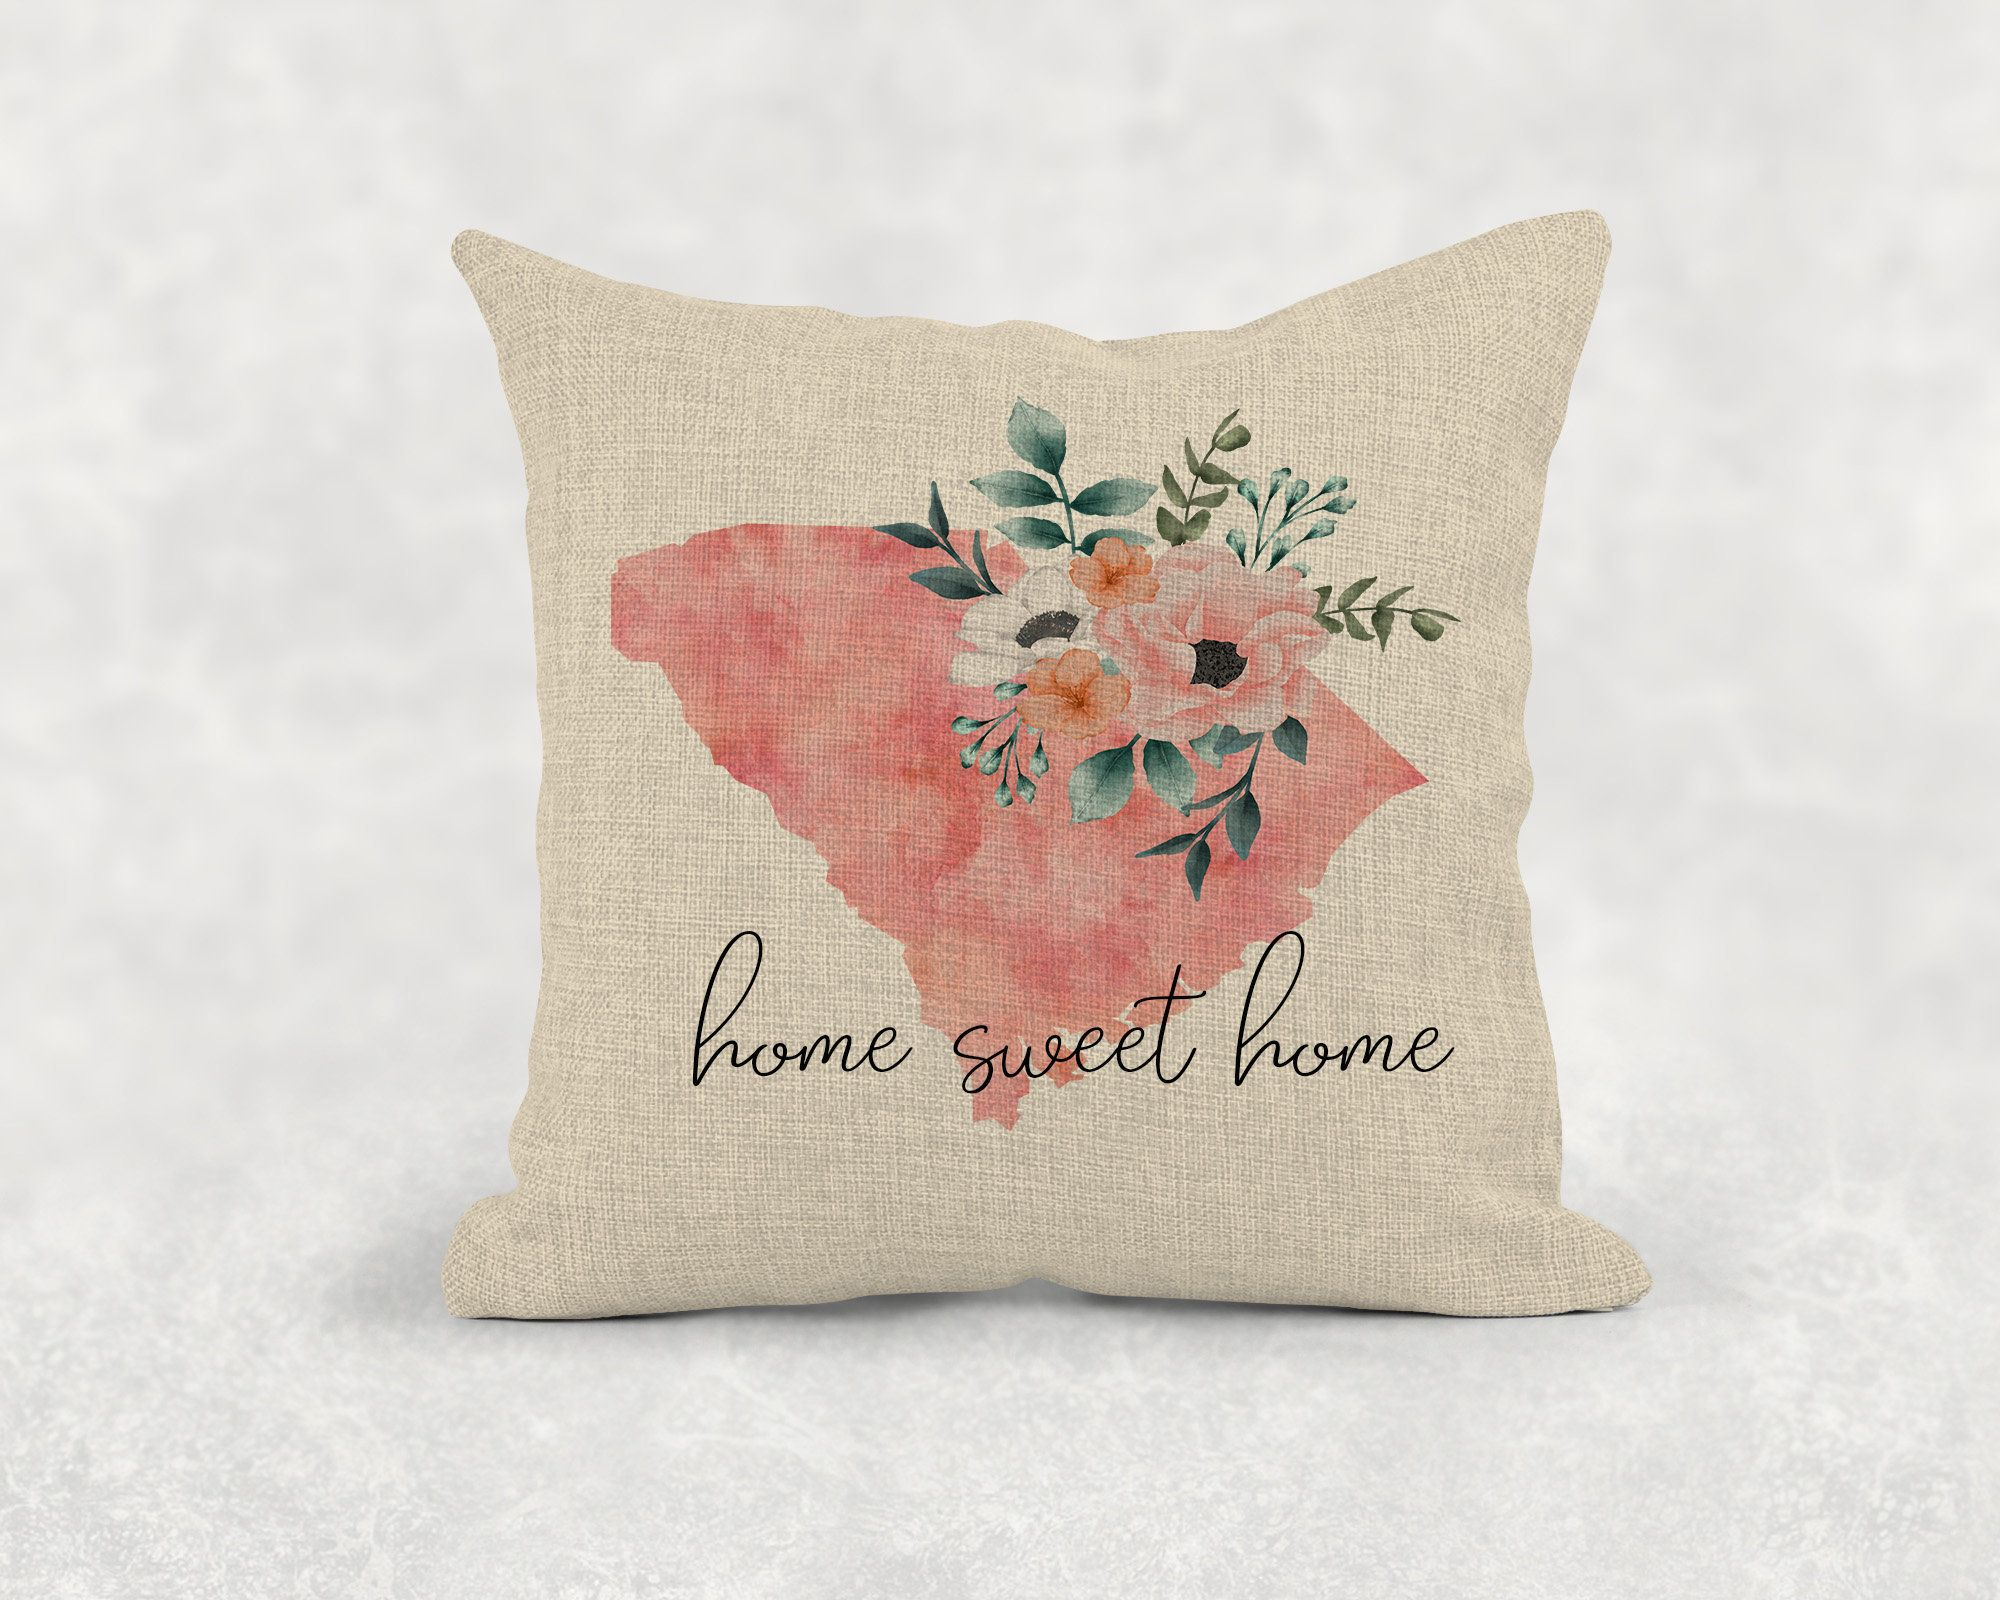 Home Sweet Home Pillow Cover State Pillow New